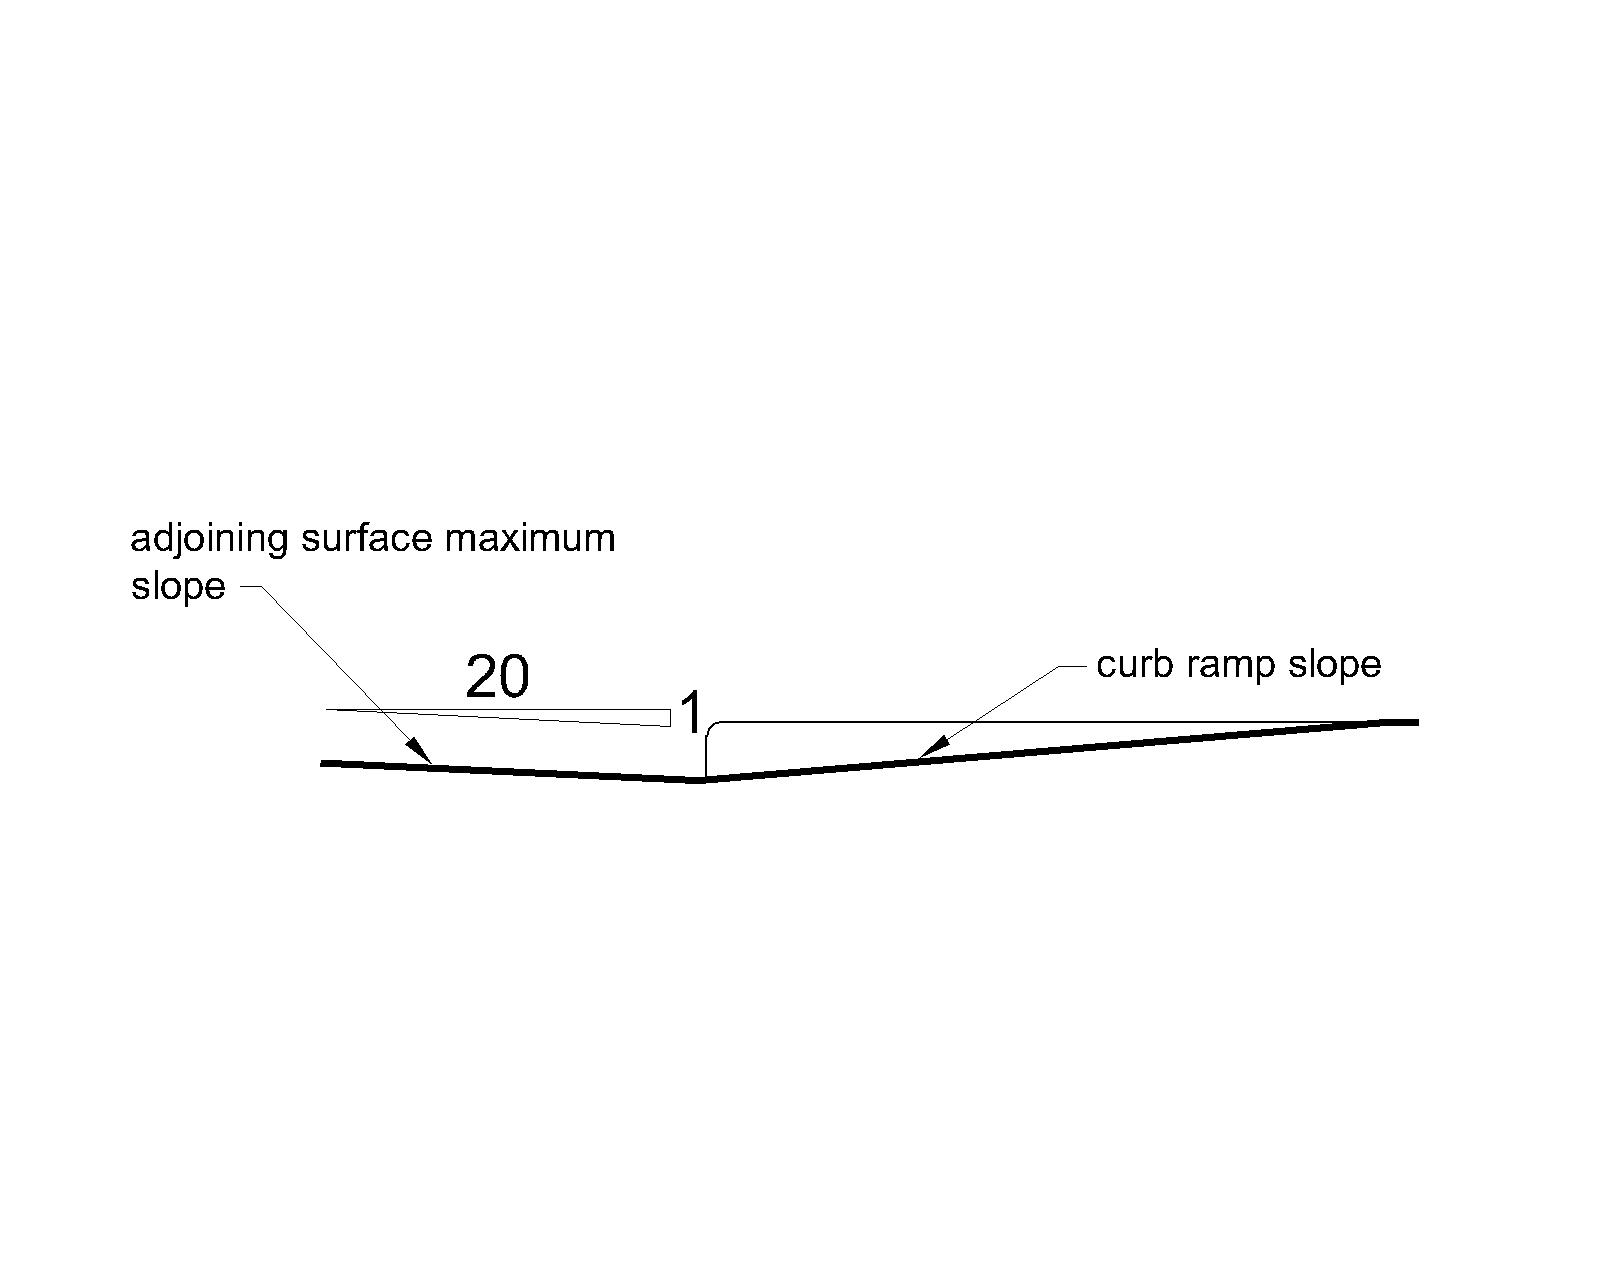 In cross section, a curb ramp with a maximum slope of 1:12 adjoins a surface at the bottom that has a maximum counter slope of 1:20.